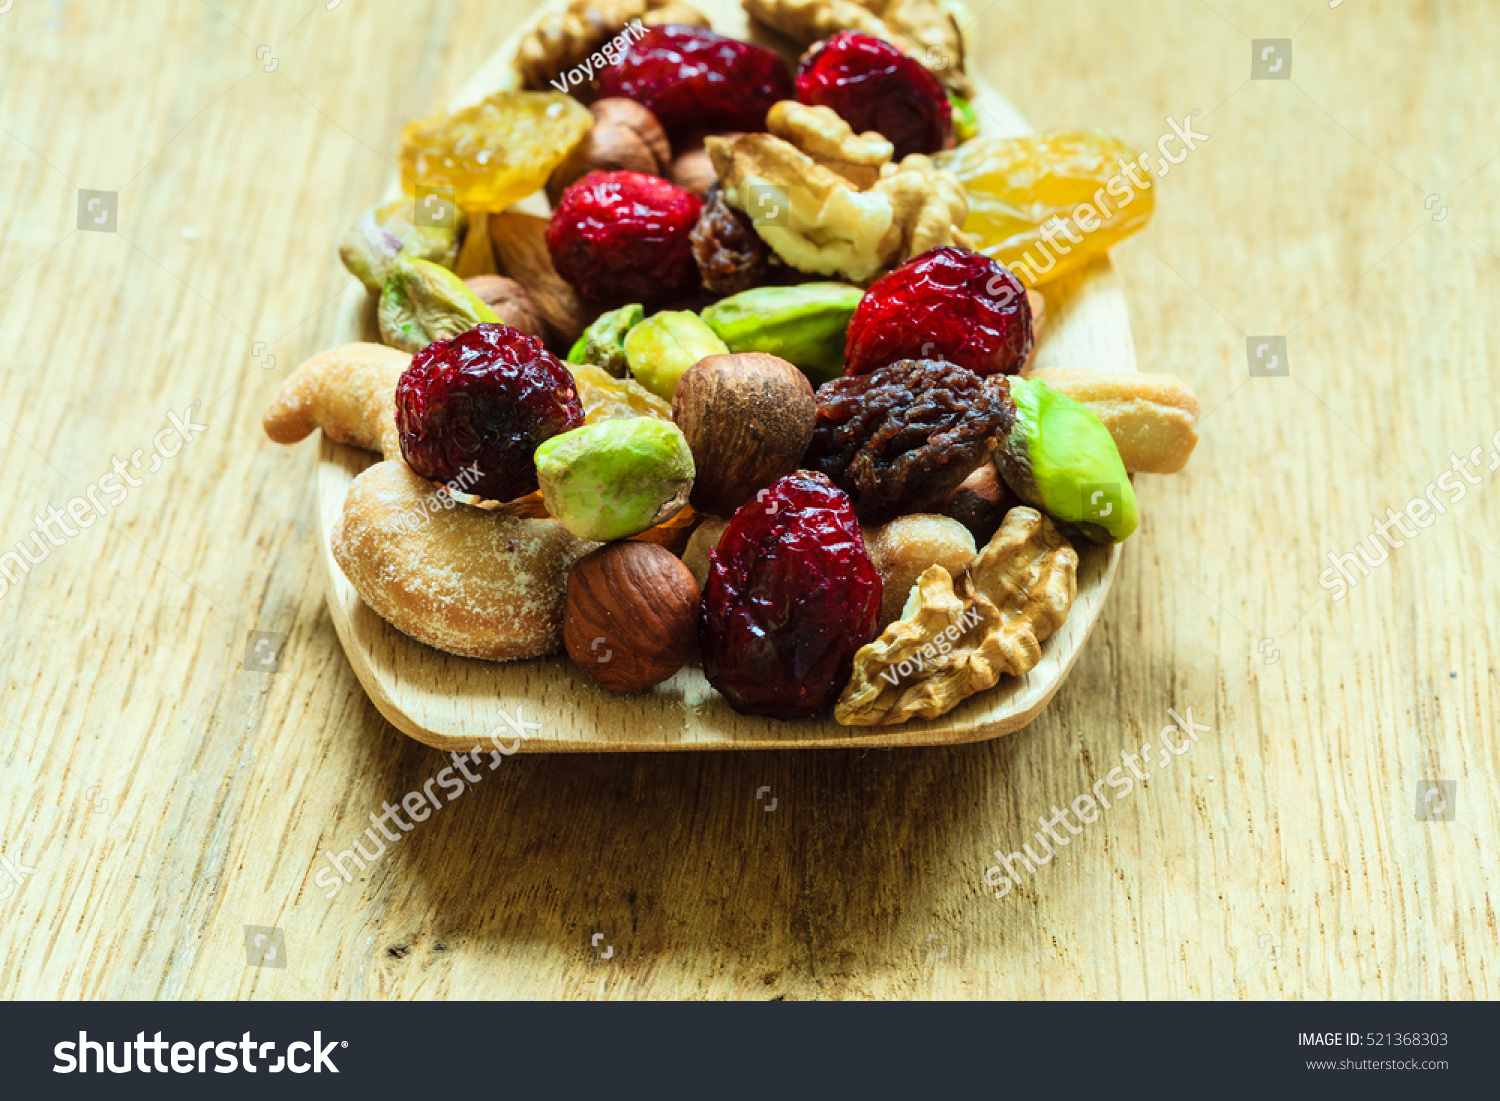 fruit calories is fruit and nut mix healthy